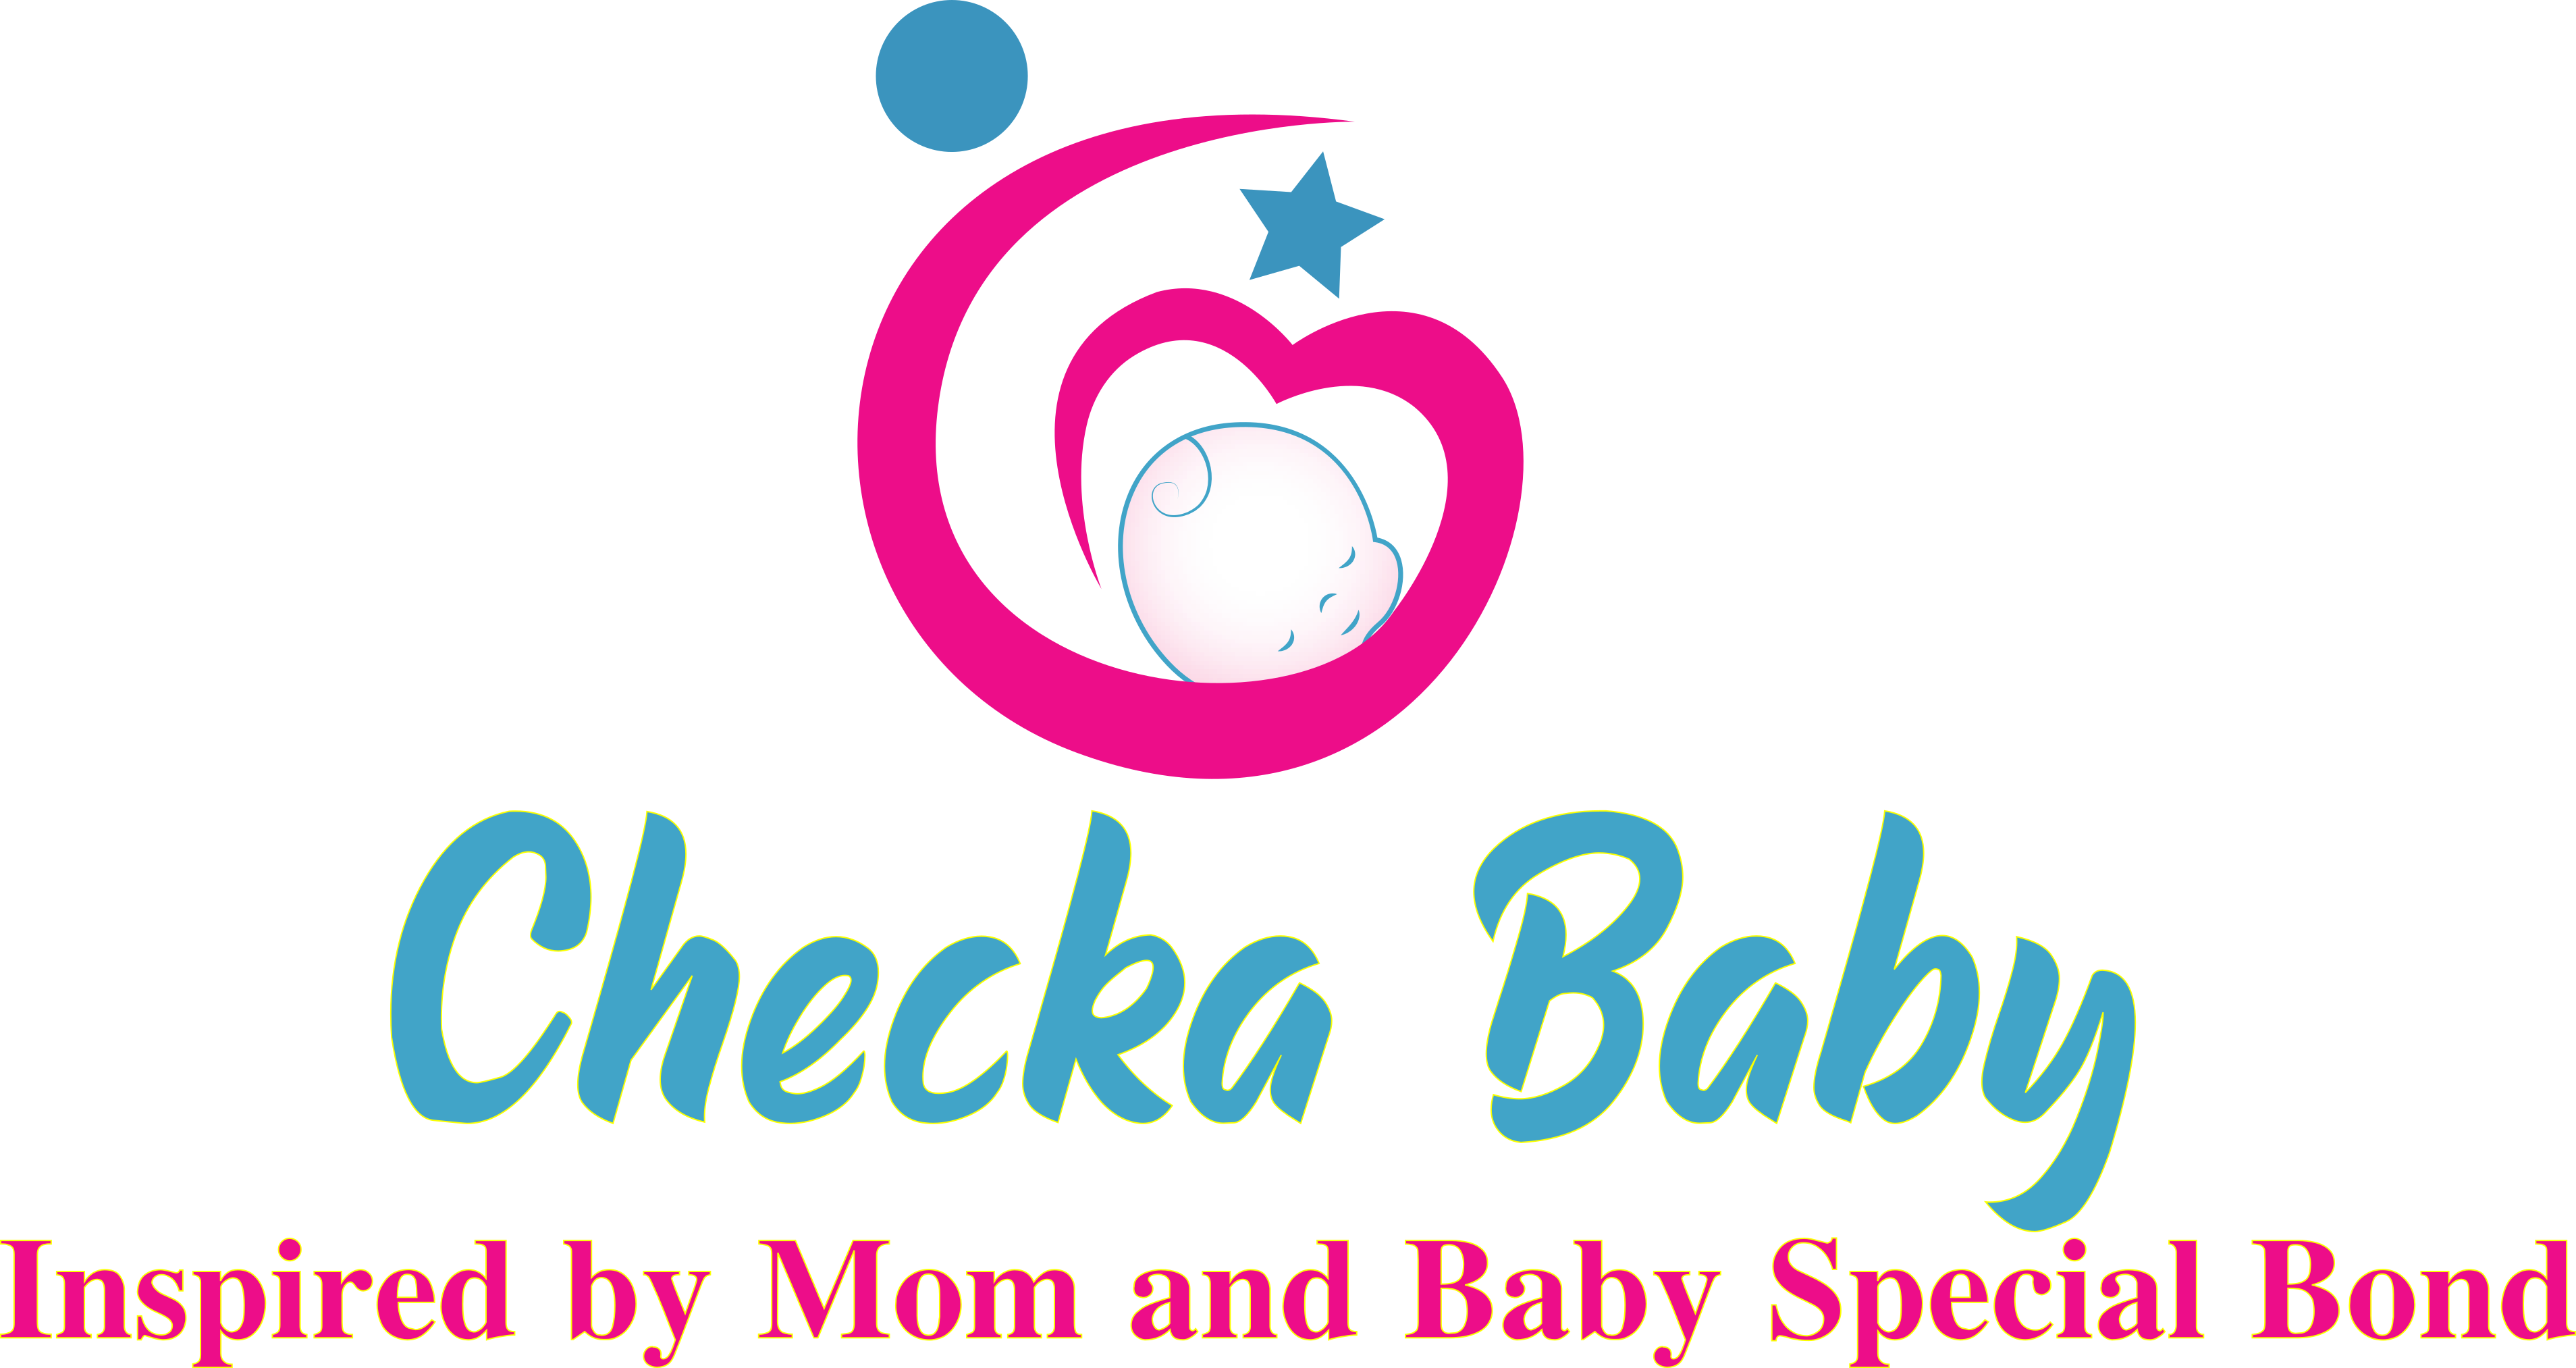 CheckaBaby